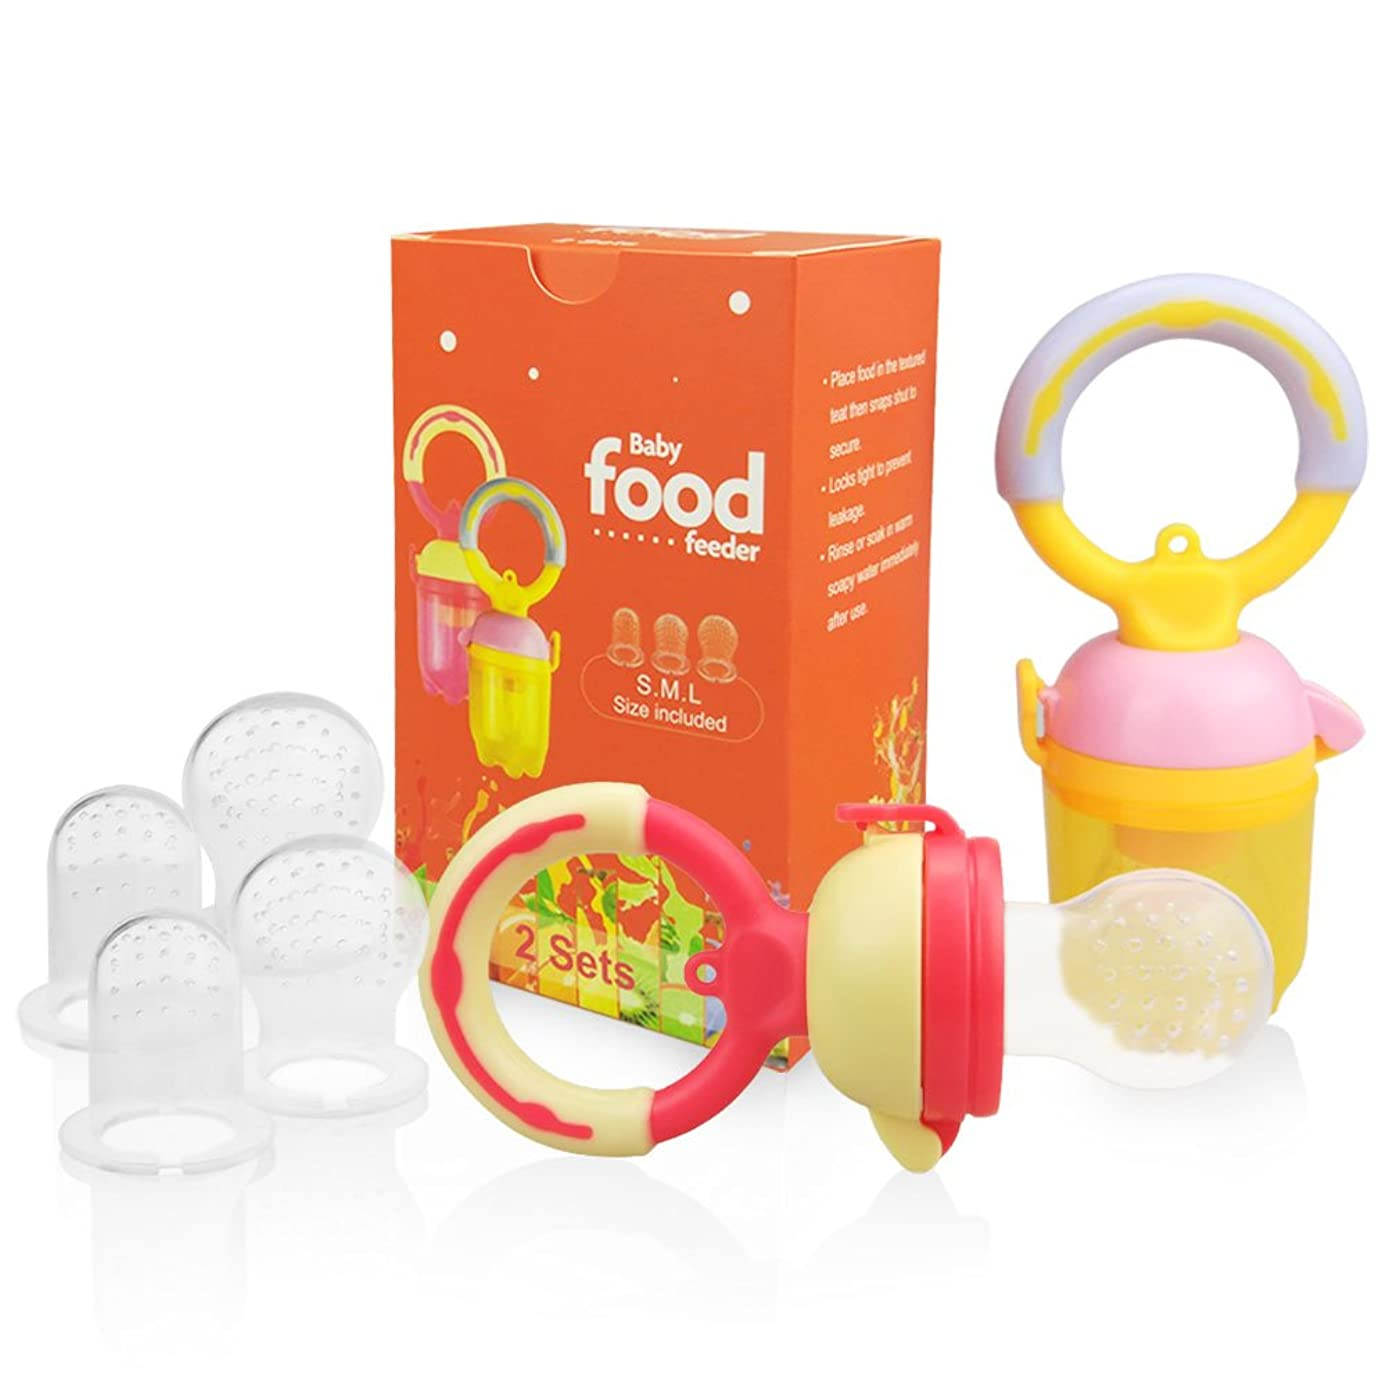 Baby Fresh Food Feeder Pacifier(2 Sets) - SILIVO Silicone Fruit Teething Feeder Teether Toy for Infants,Toddlers, and Kids - Includes All Sizes Silicone Nipples